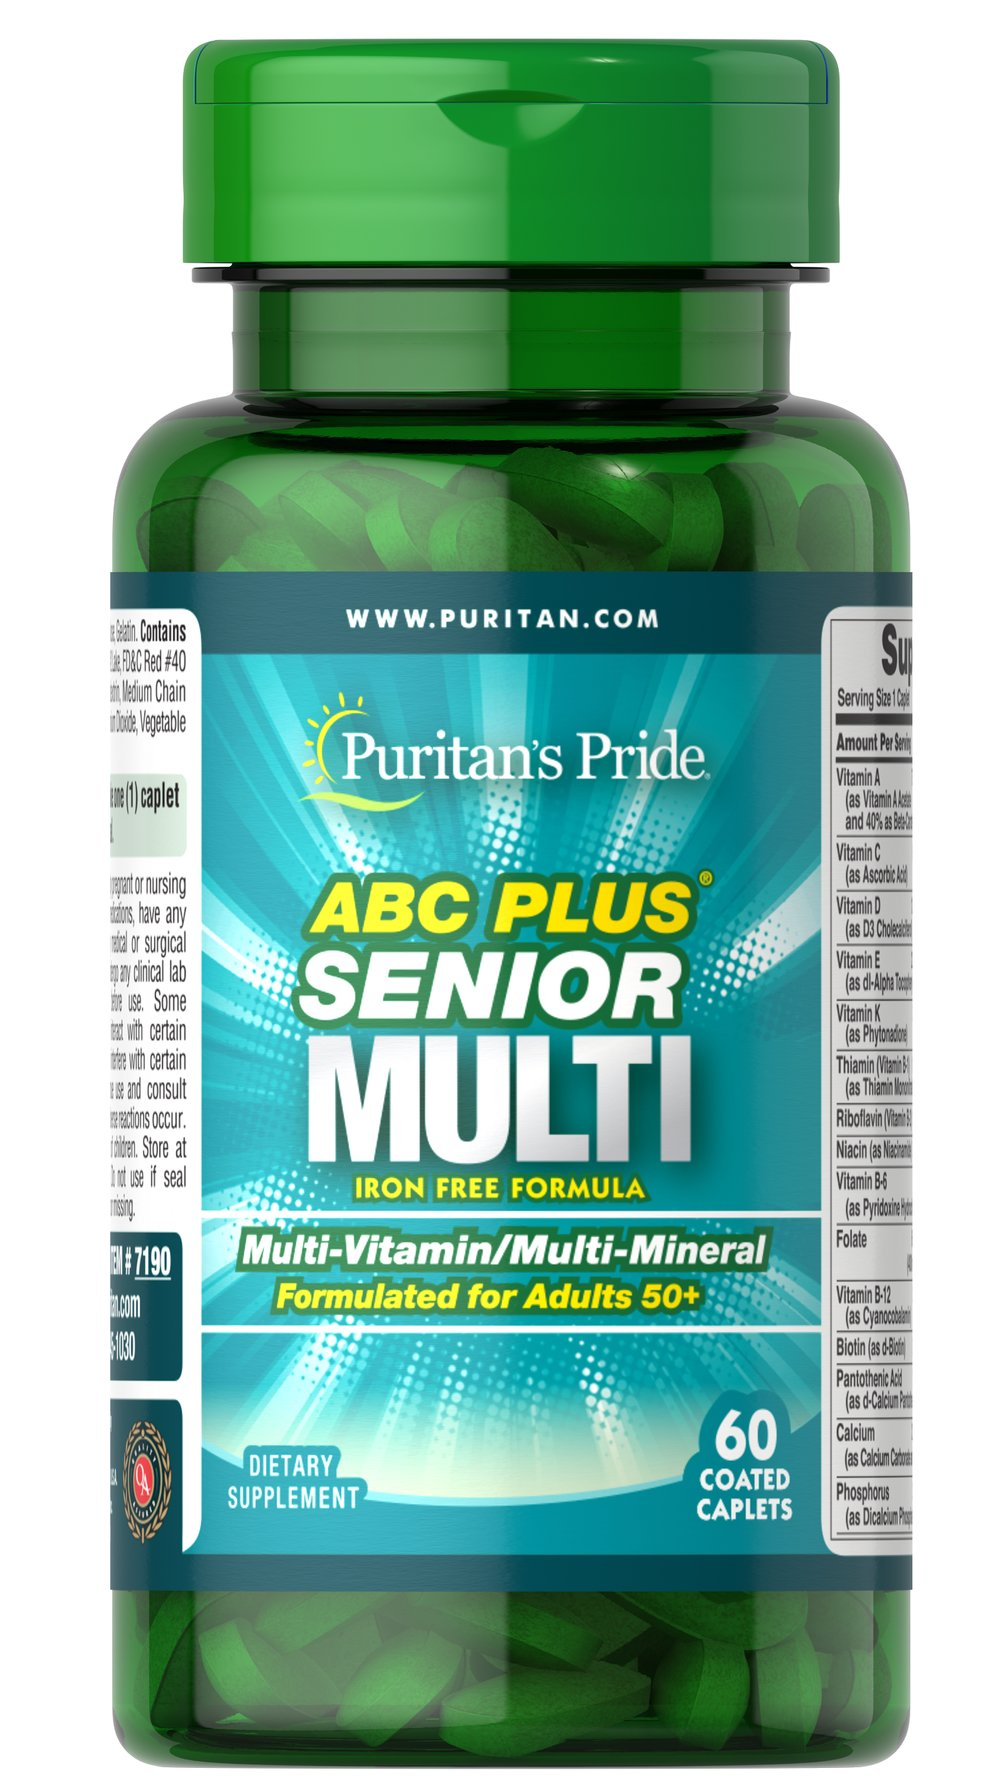 ABC Plus® Senior Multivitamin Multi-Mineral Formula <p>A special high-quality blend of vitamins and minerals formulated exclusively for adults 50 and over; delivers 100% or more daily values of Vitamins C, D, E, B-2, Niacin, Folic Acid and B-12. This is an iron-free, heart-healthy supplement.** Compare and save!</p> 60 Caplets  $9.49